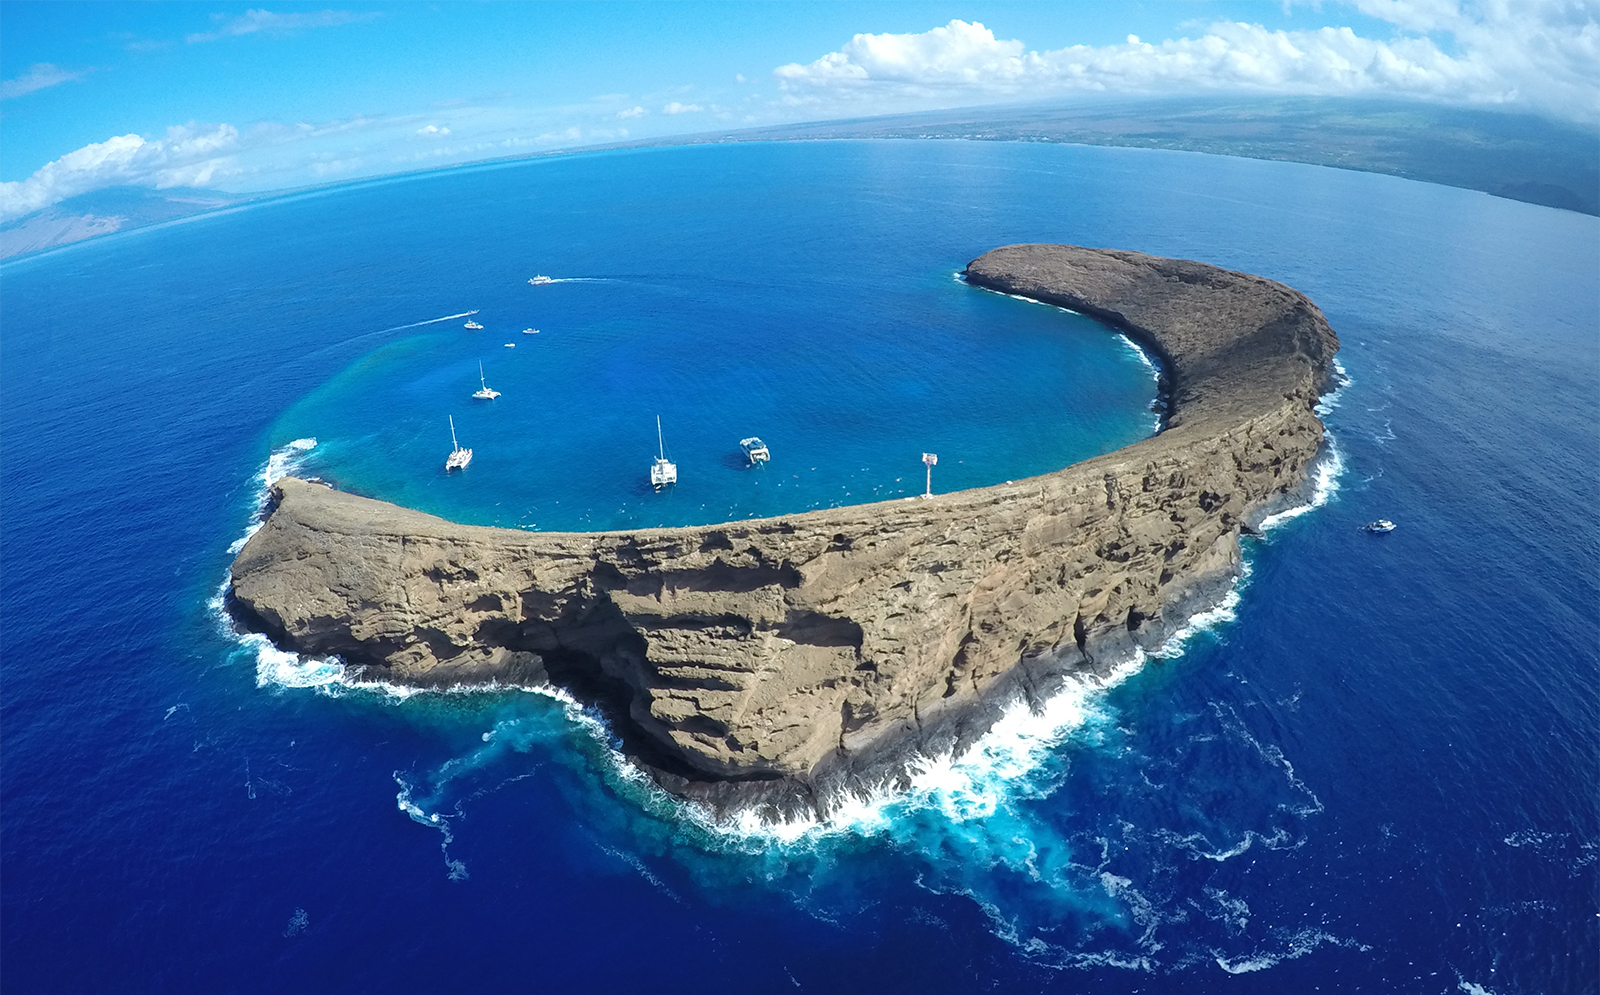 hawaii s natural beauty shines from all angles and elevations